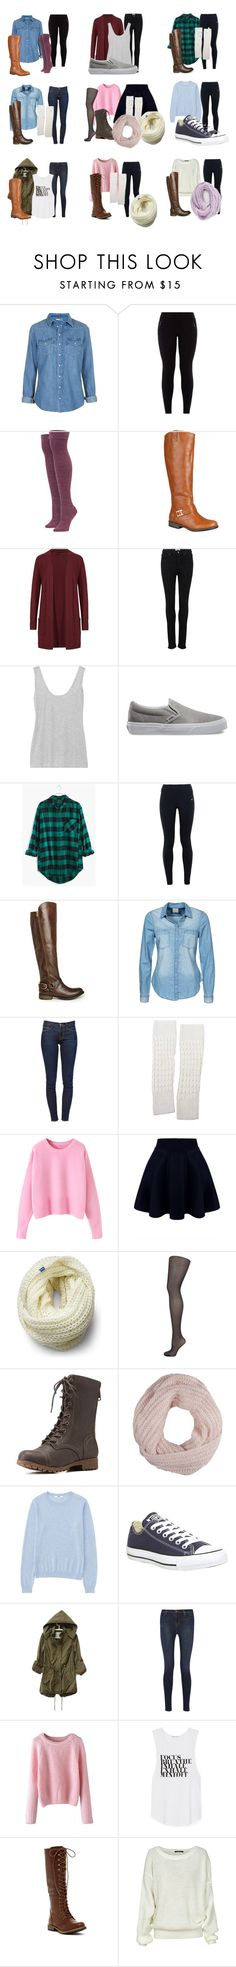 """""""Potential Audition Outfits"""" by fan-girl-fashions on Polyvore featuring Topshop, Stance, Journee Collection, M&S Collection, Paige Denim, The Row, Vans, Madewell, NIKE and Steve Madden"""